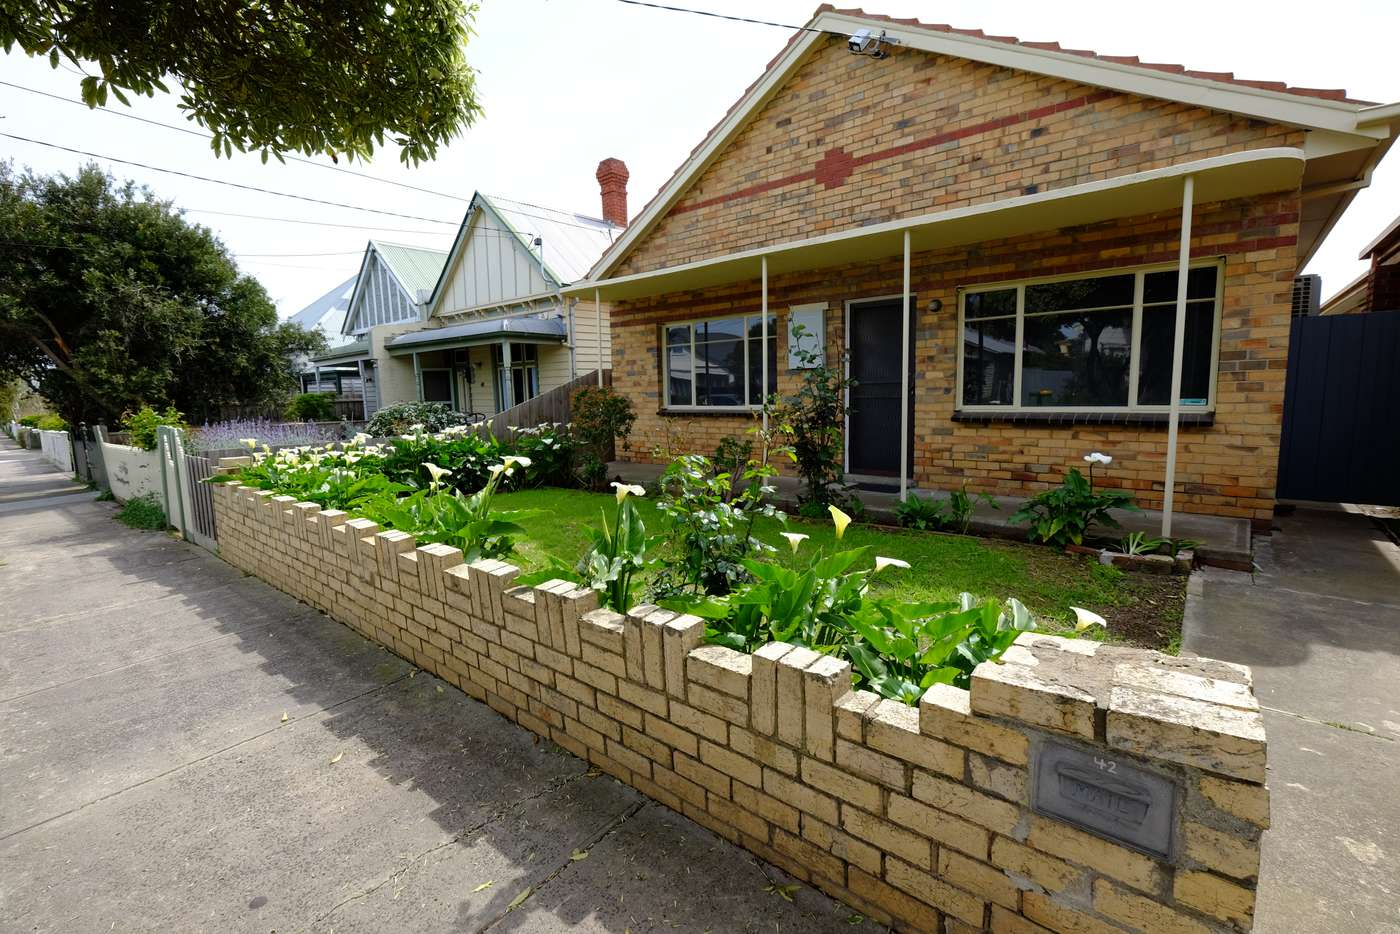 Main view of Homely house listing, 42 Harold Street, Thornbury VIC 3071